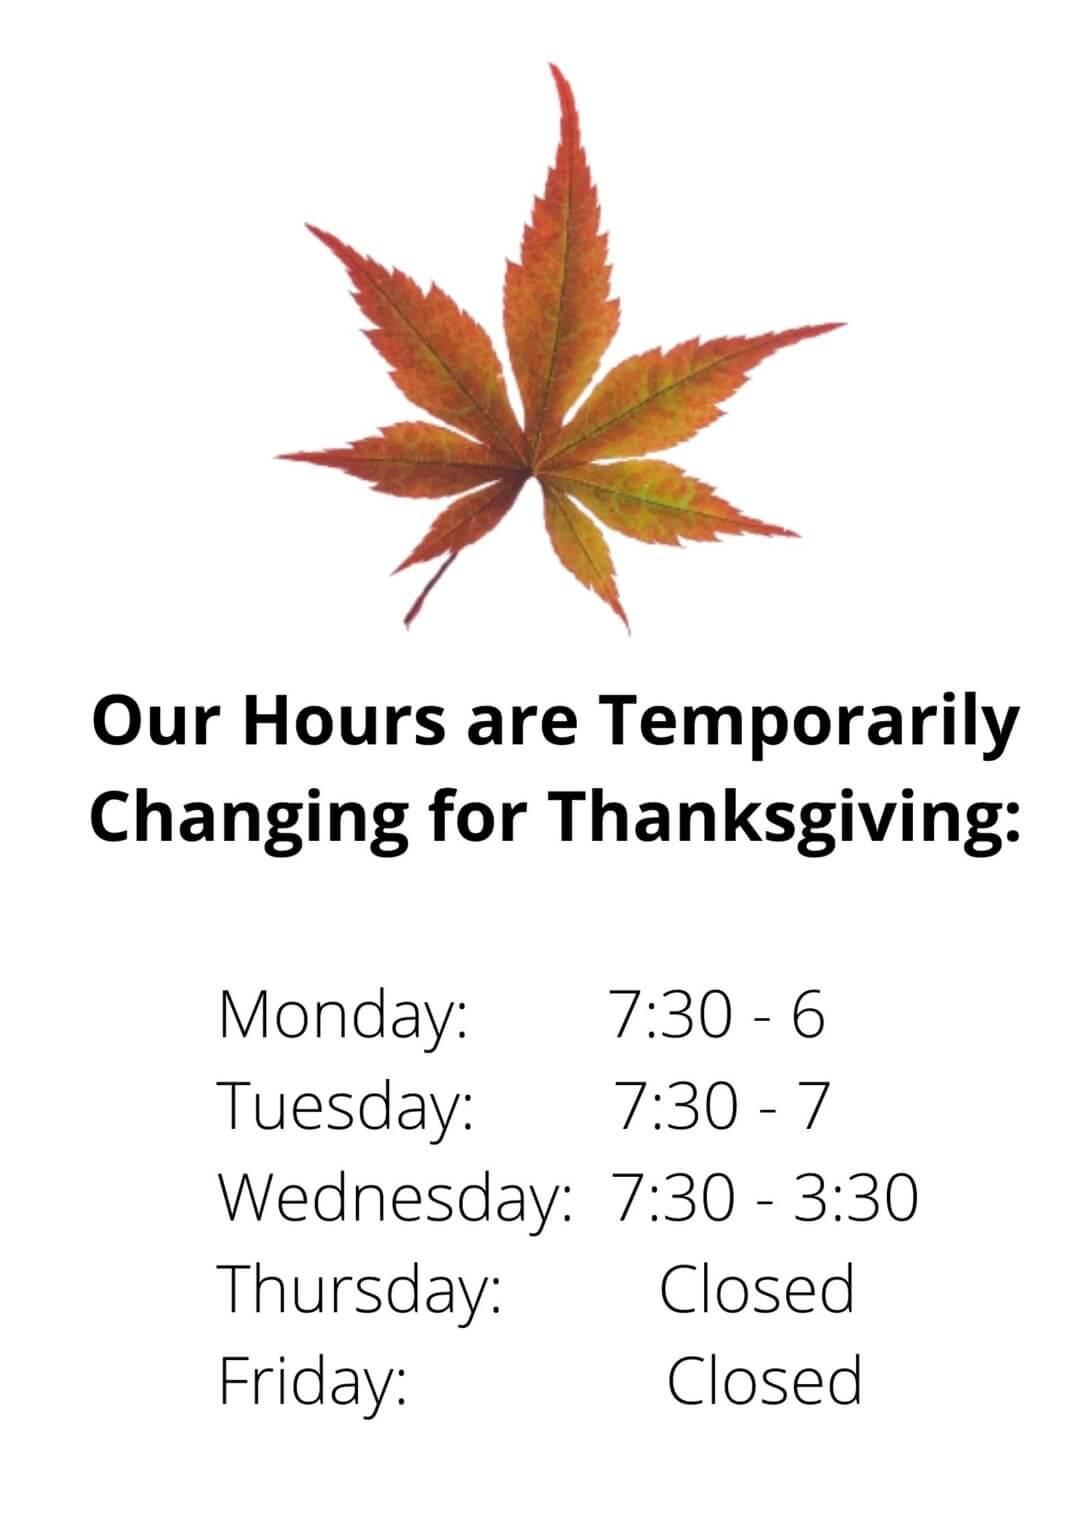 Our Hours are Temporarily Changing for Thanksgiving